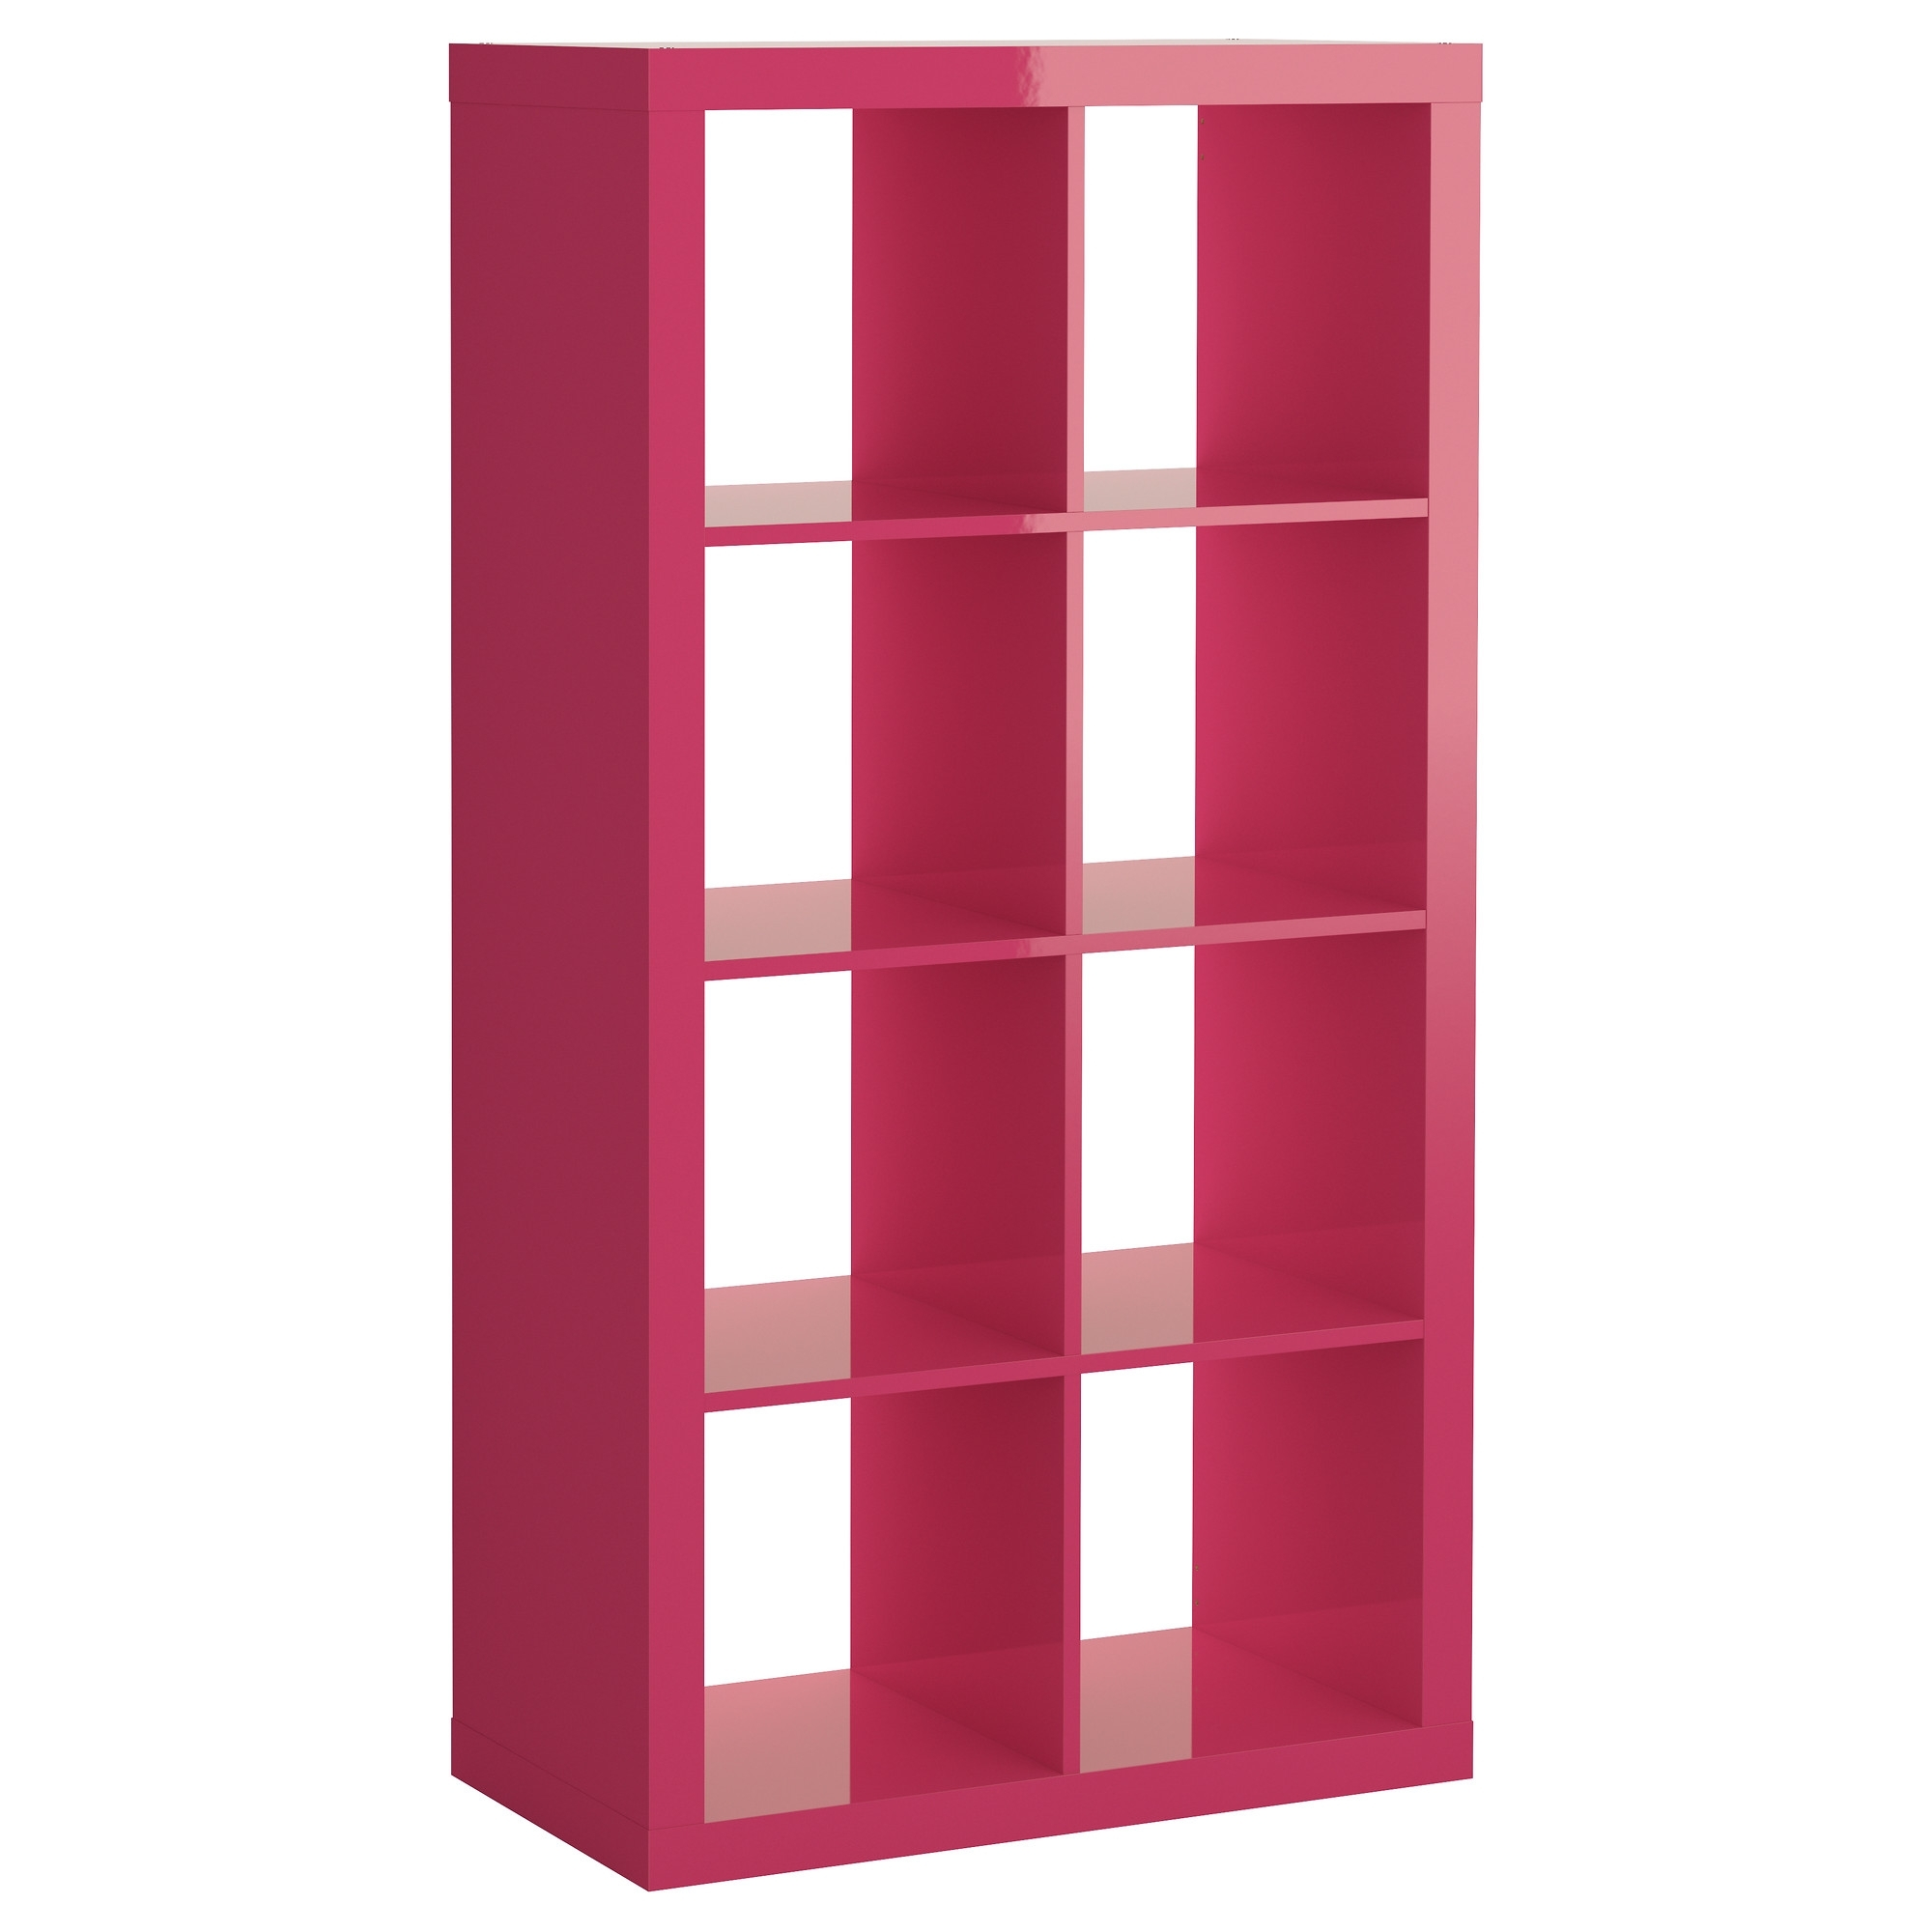 Pink Bookcases Regarding Latest Furniture Home: Furniture Home Unusual Pink Bookcase Pictures (View 7 of 15)